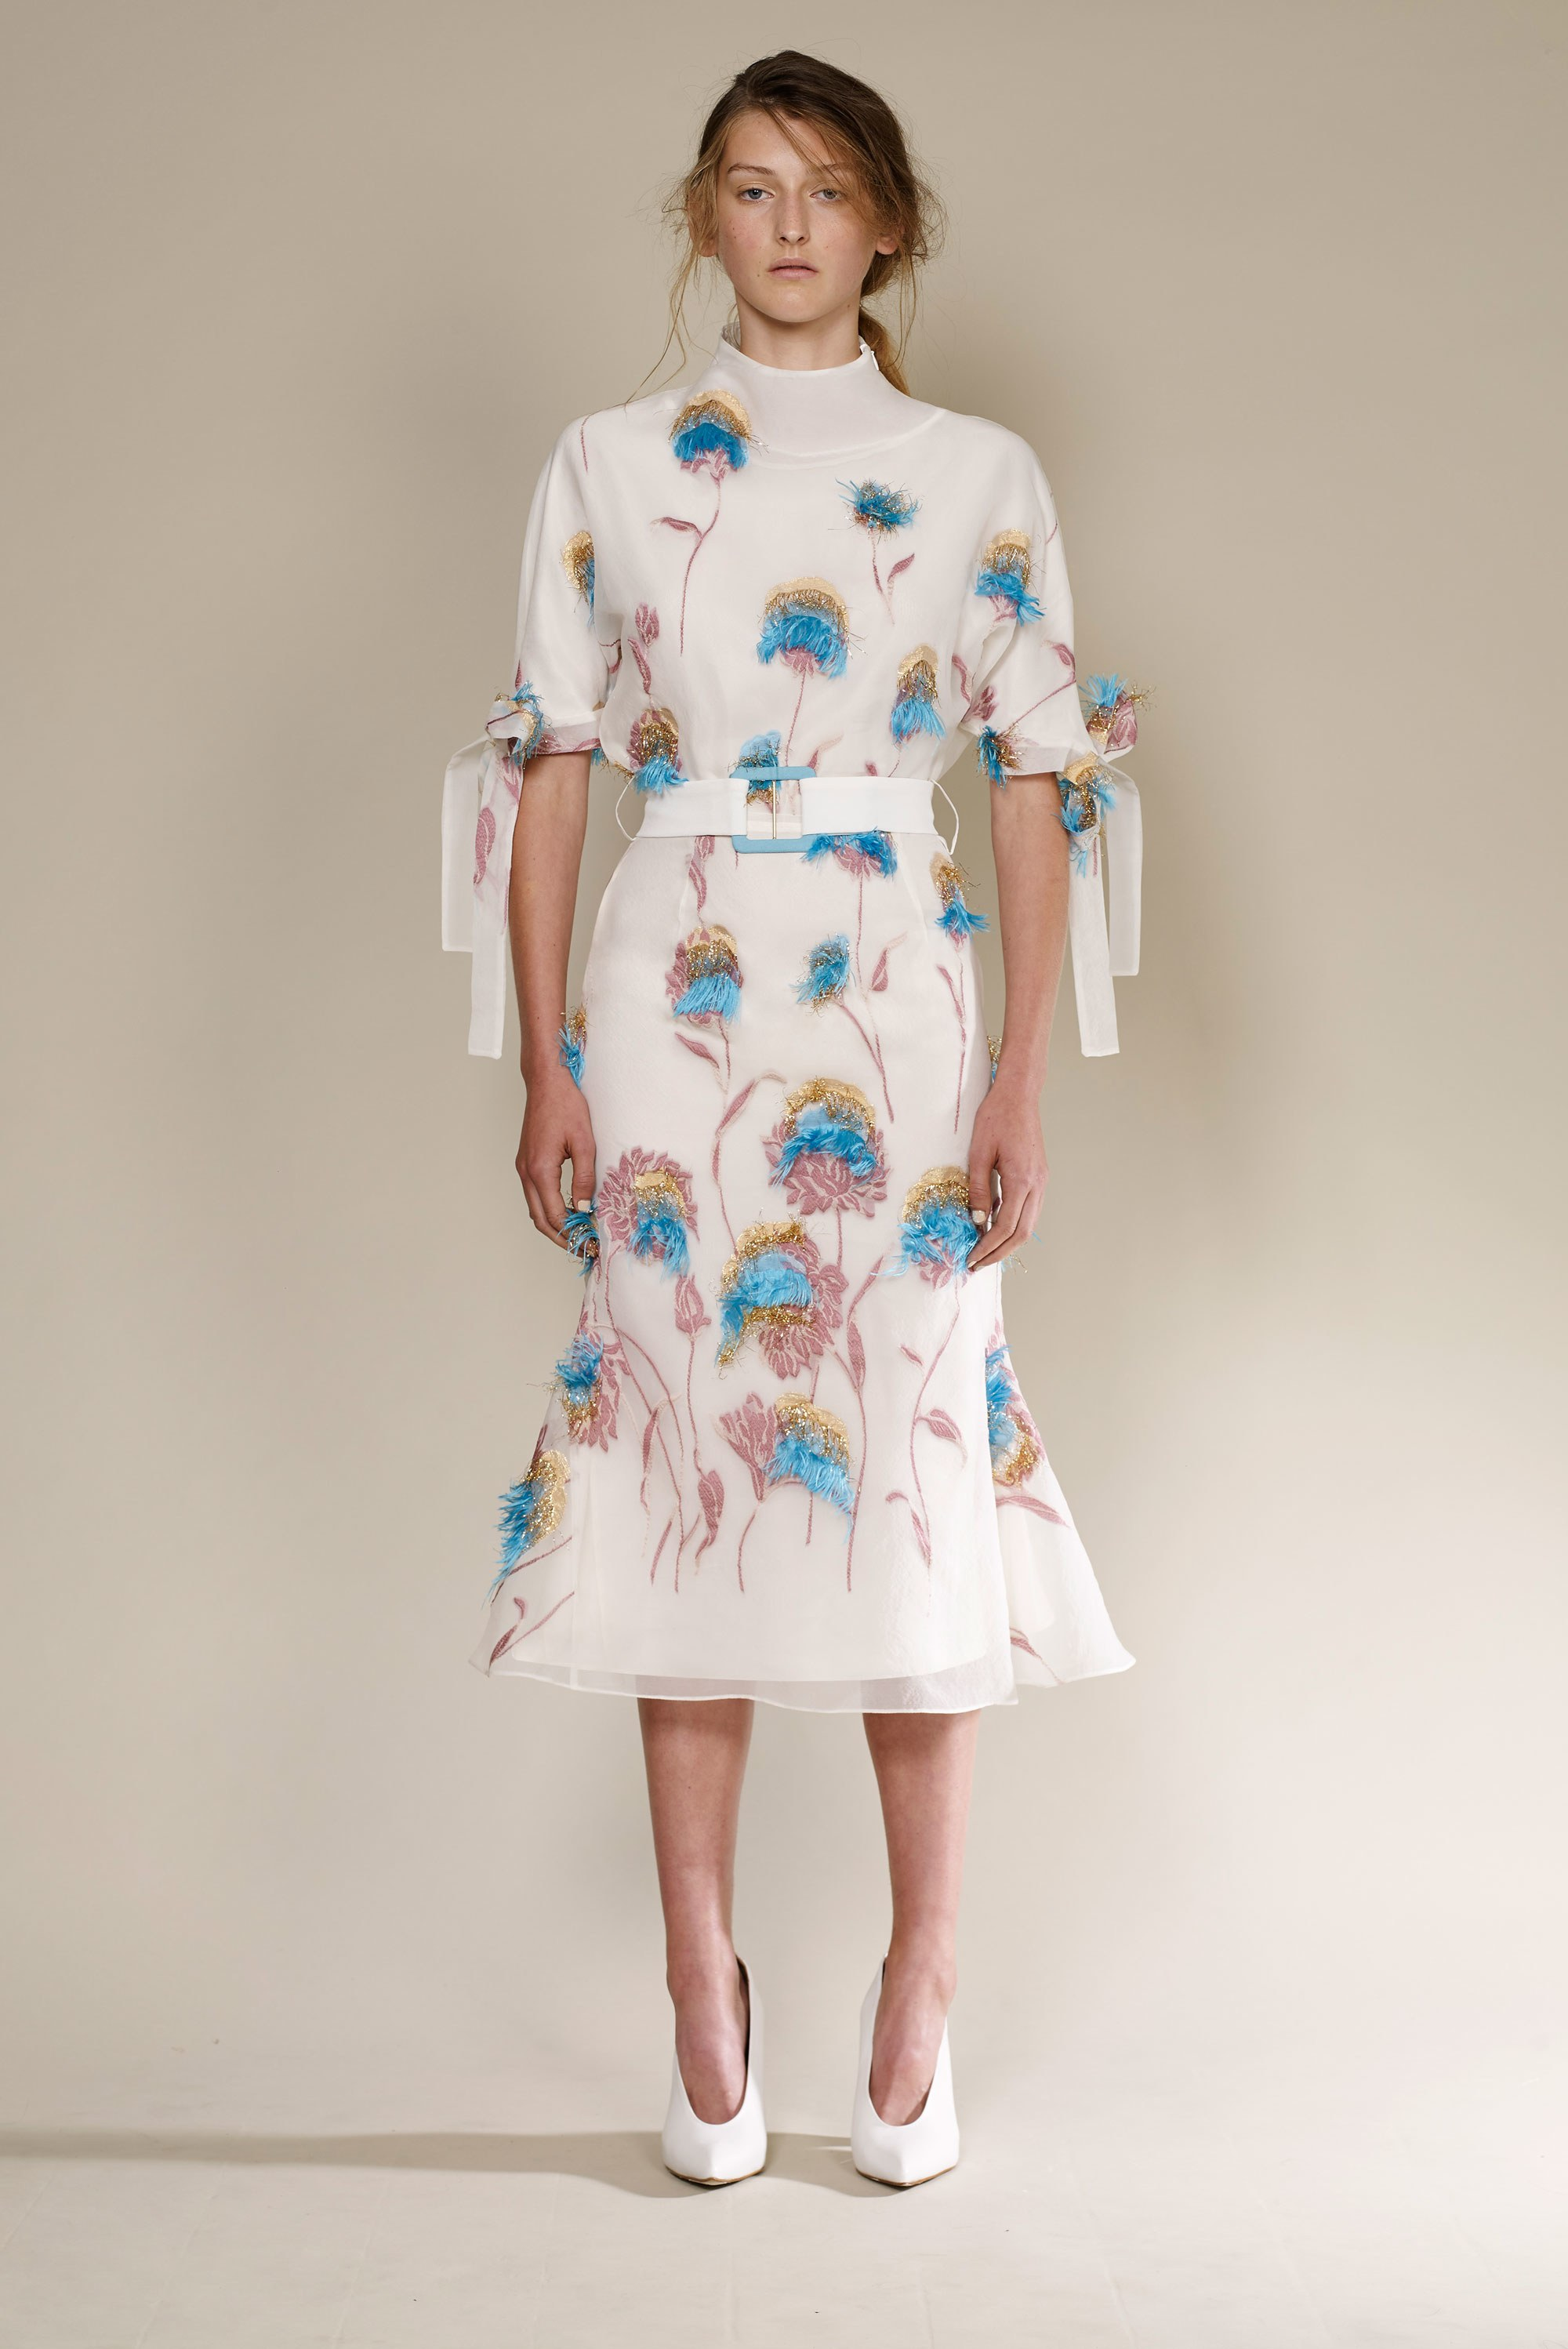 Edeline_Lee_London_Fashion_Week_SS18_Look_7_Spring_Summer_Runway_LFW_SS18_Embroidered_Dress